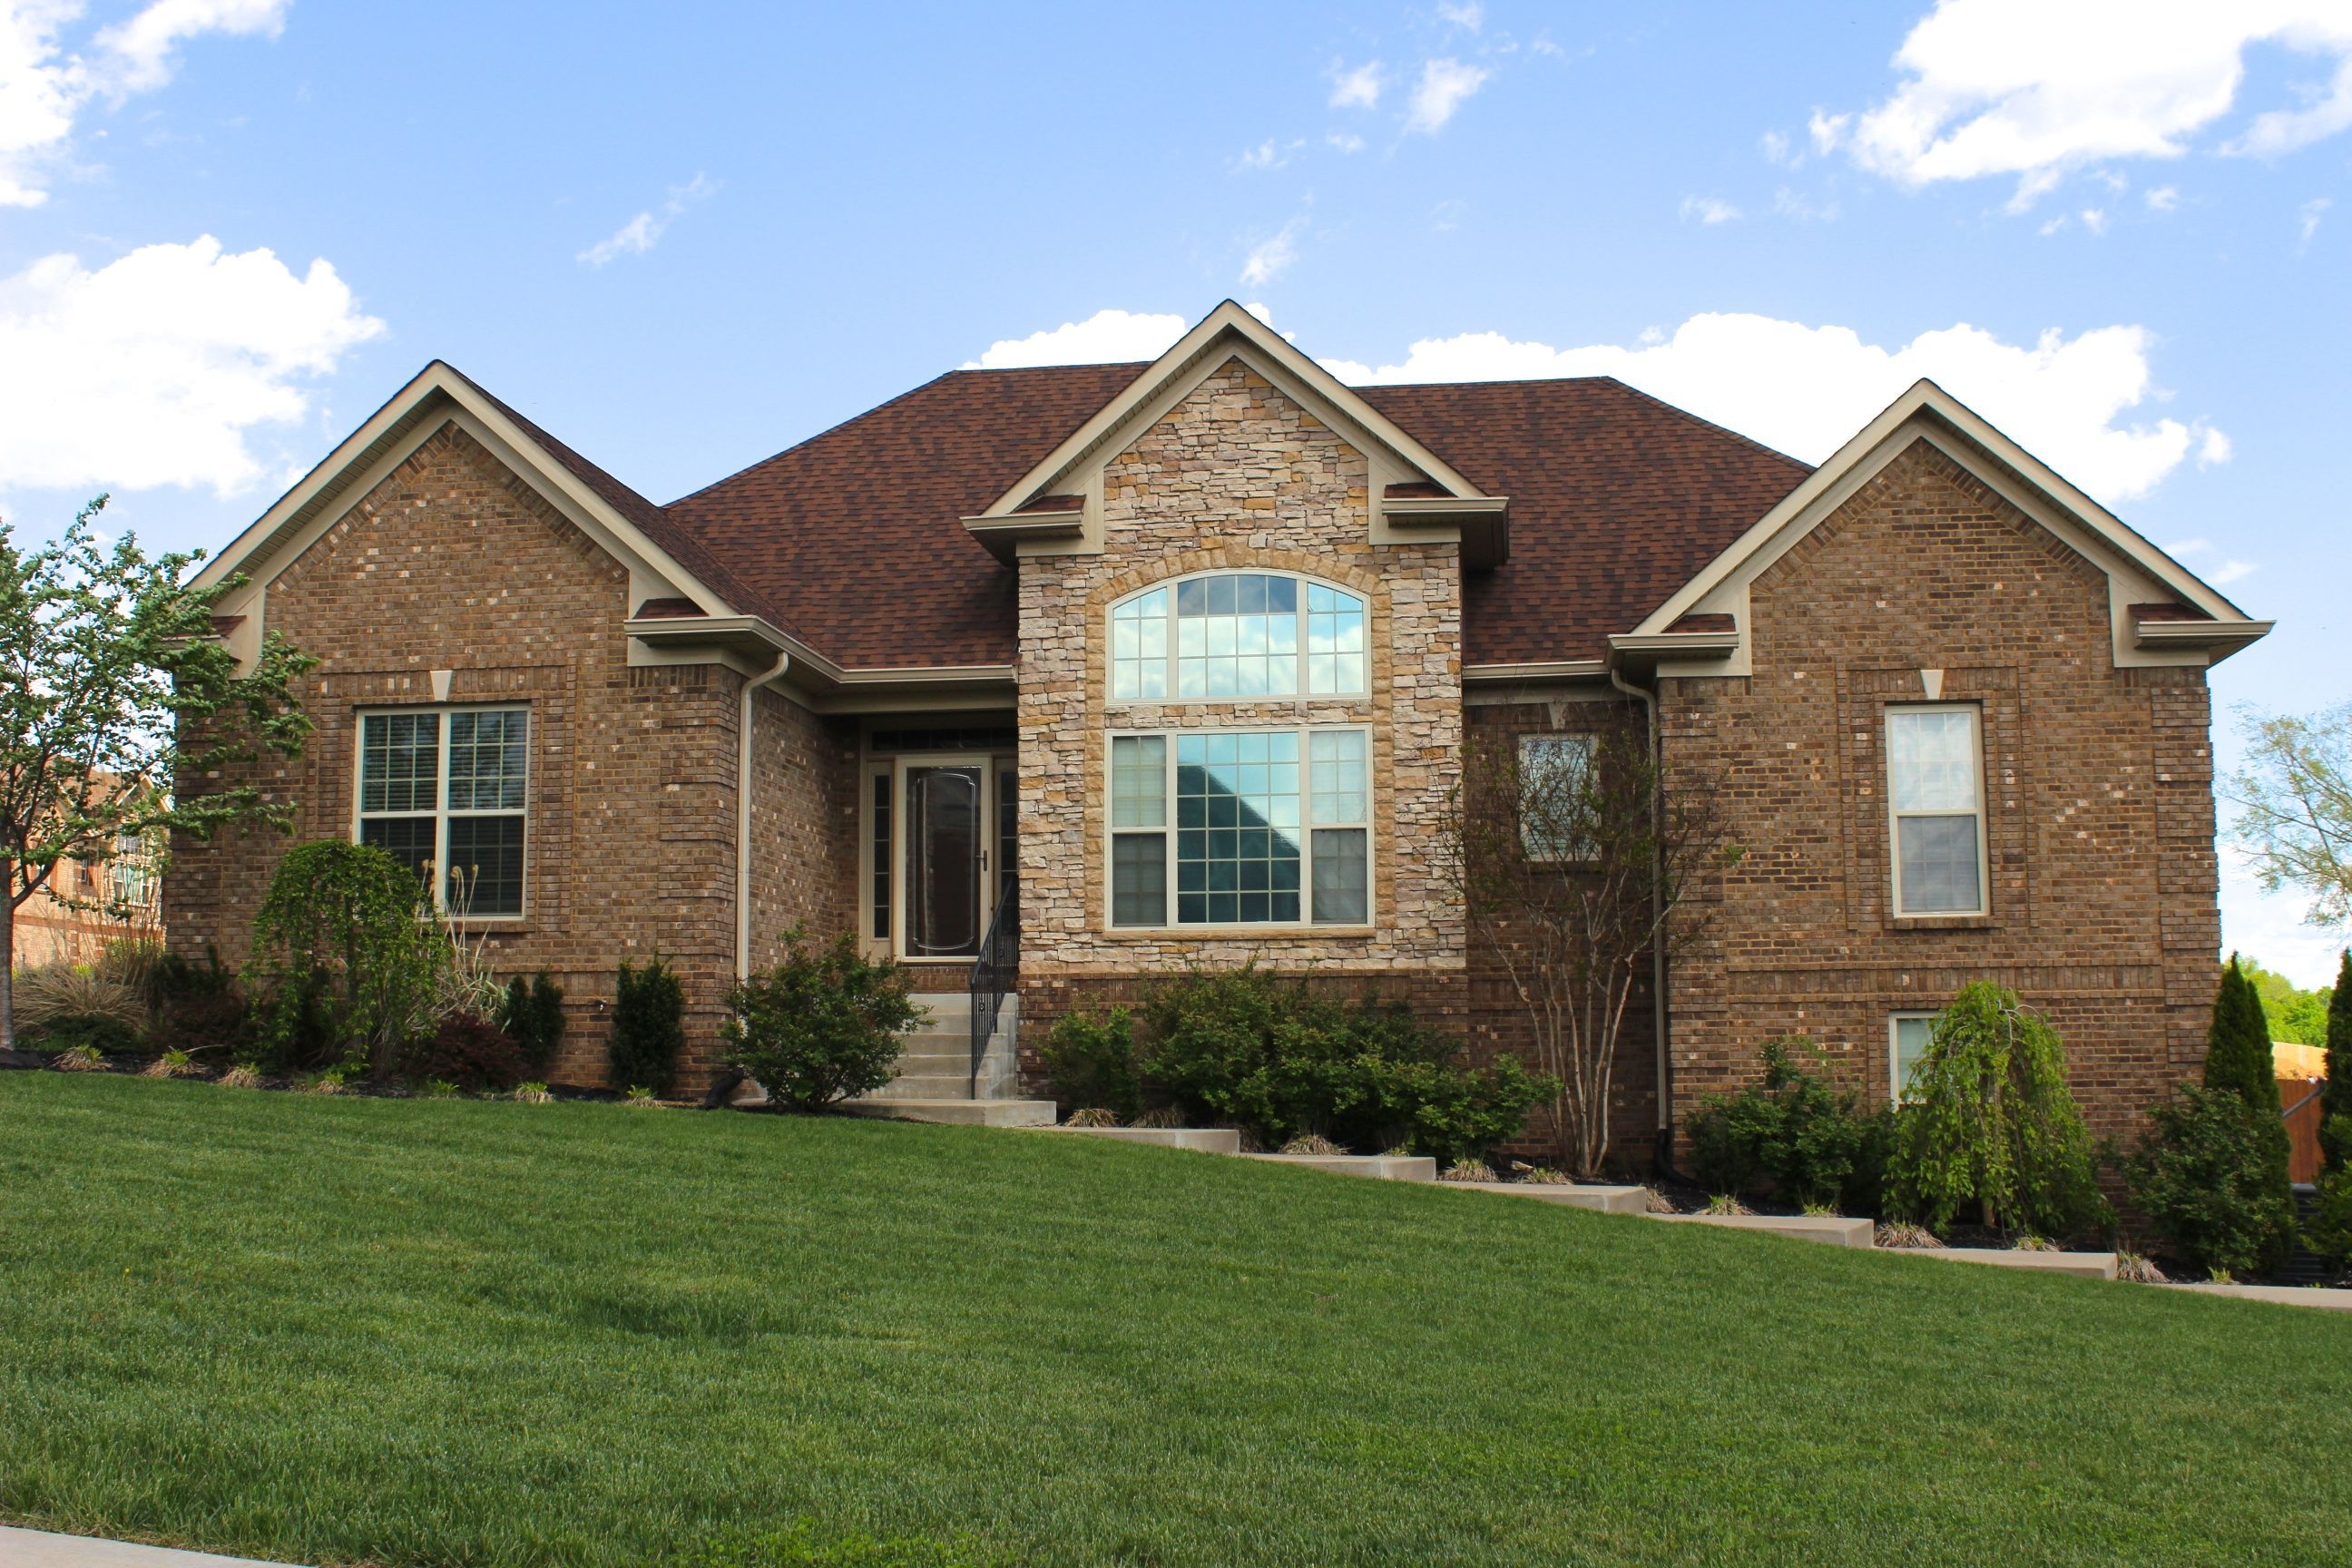 New or older homes in Clarksville